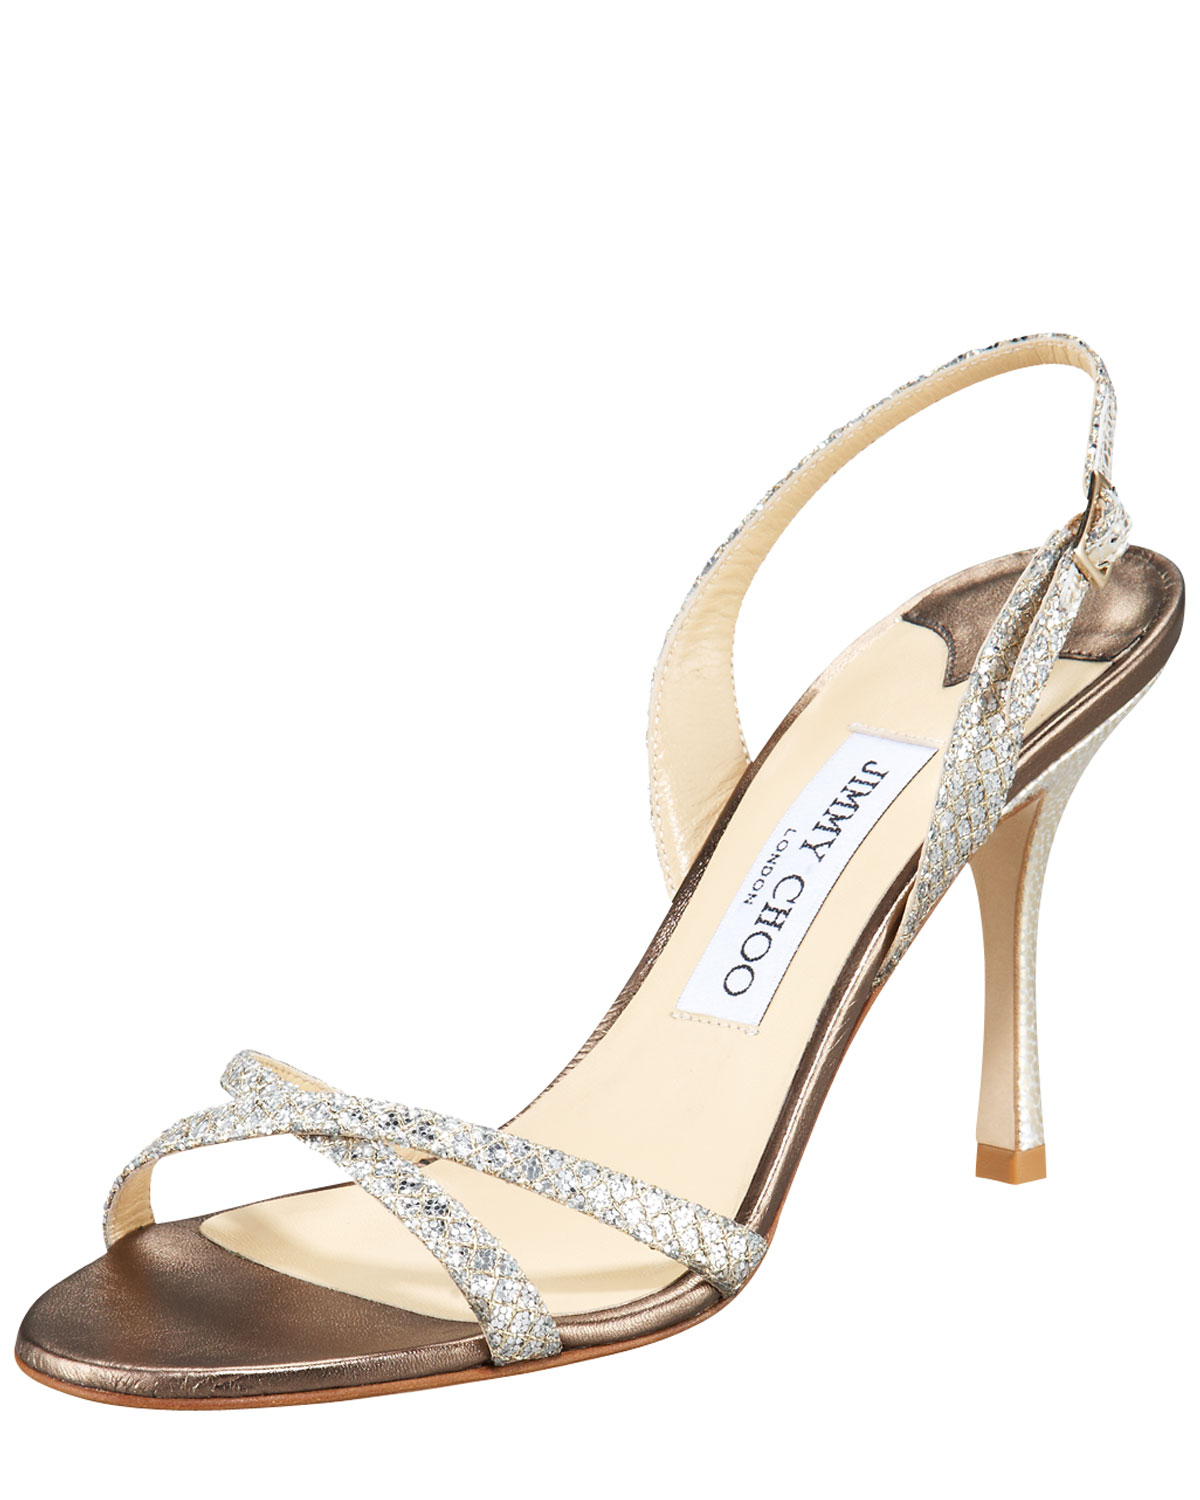 jimmy choo factory outlet online  slingback - jimmy